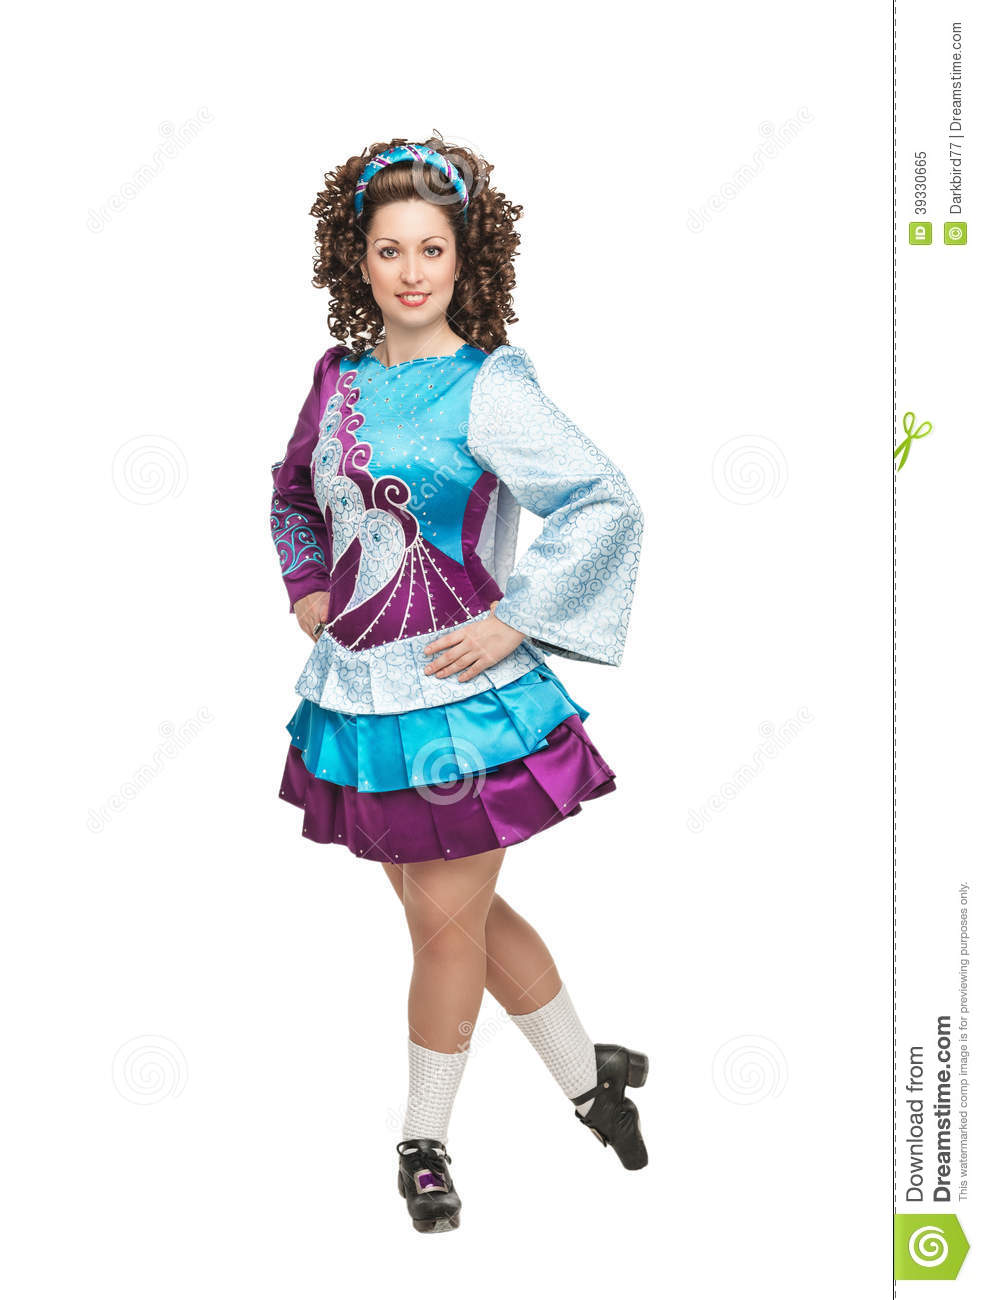 Irish Dancer In Hard Shoes Stock Photo Image 39330665